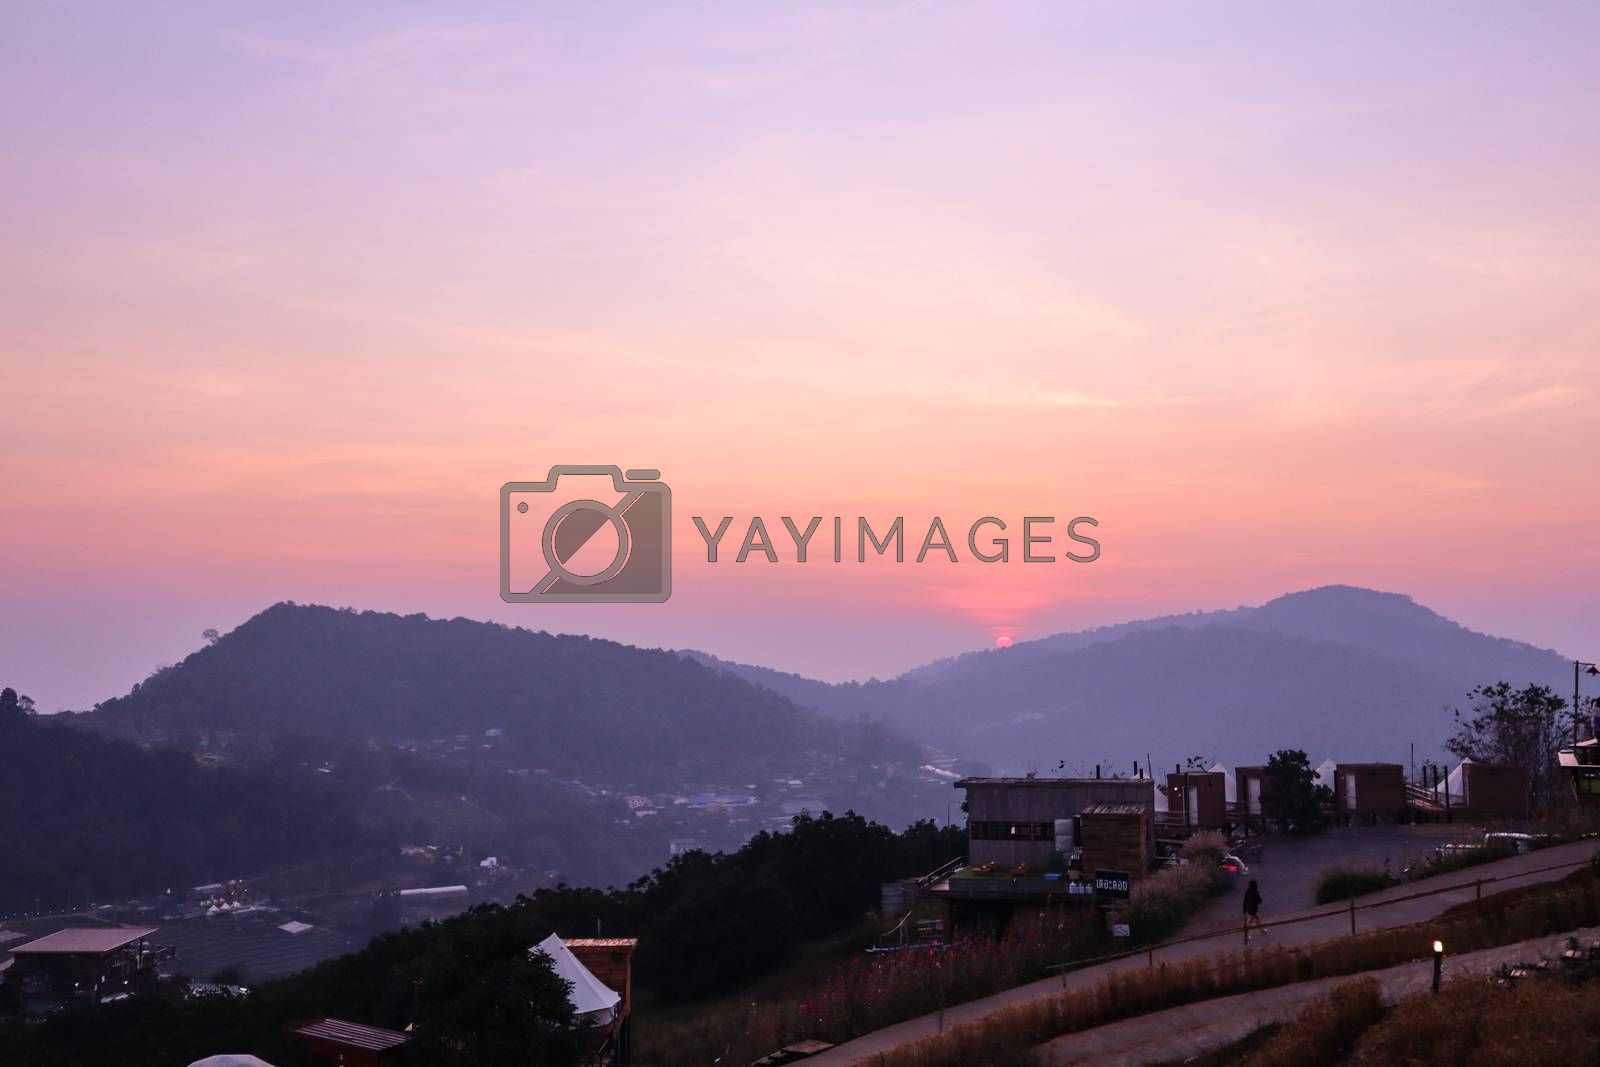 The sunset in a thai village near mountains in Chiang Mai, Thailand. The mountain scenery view